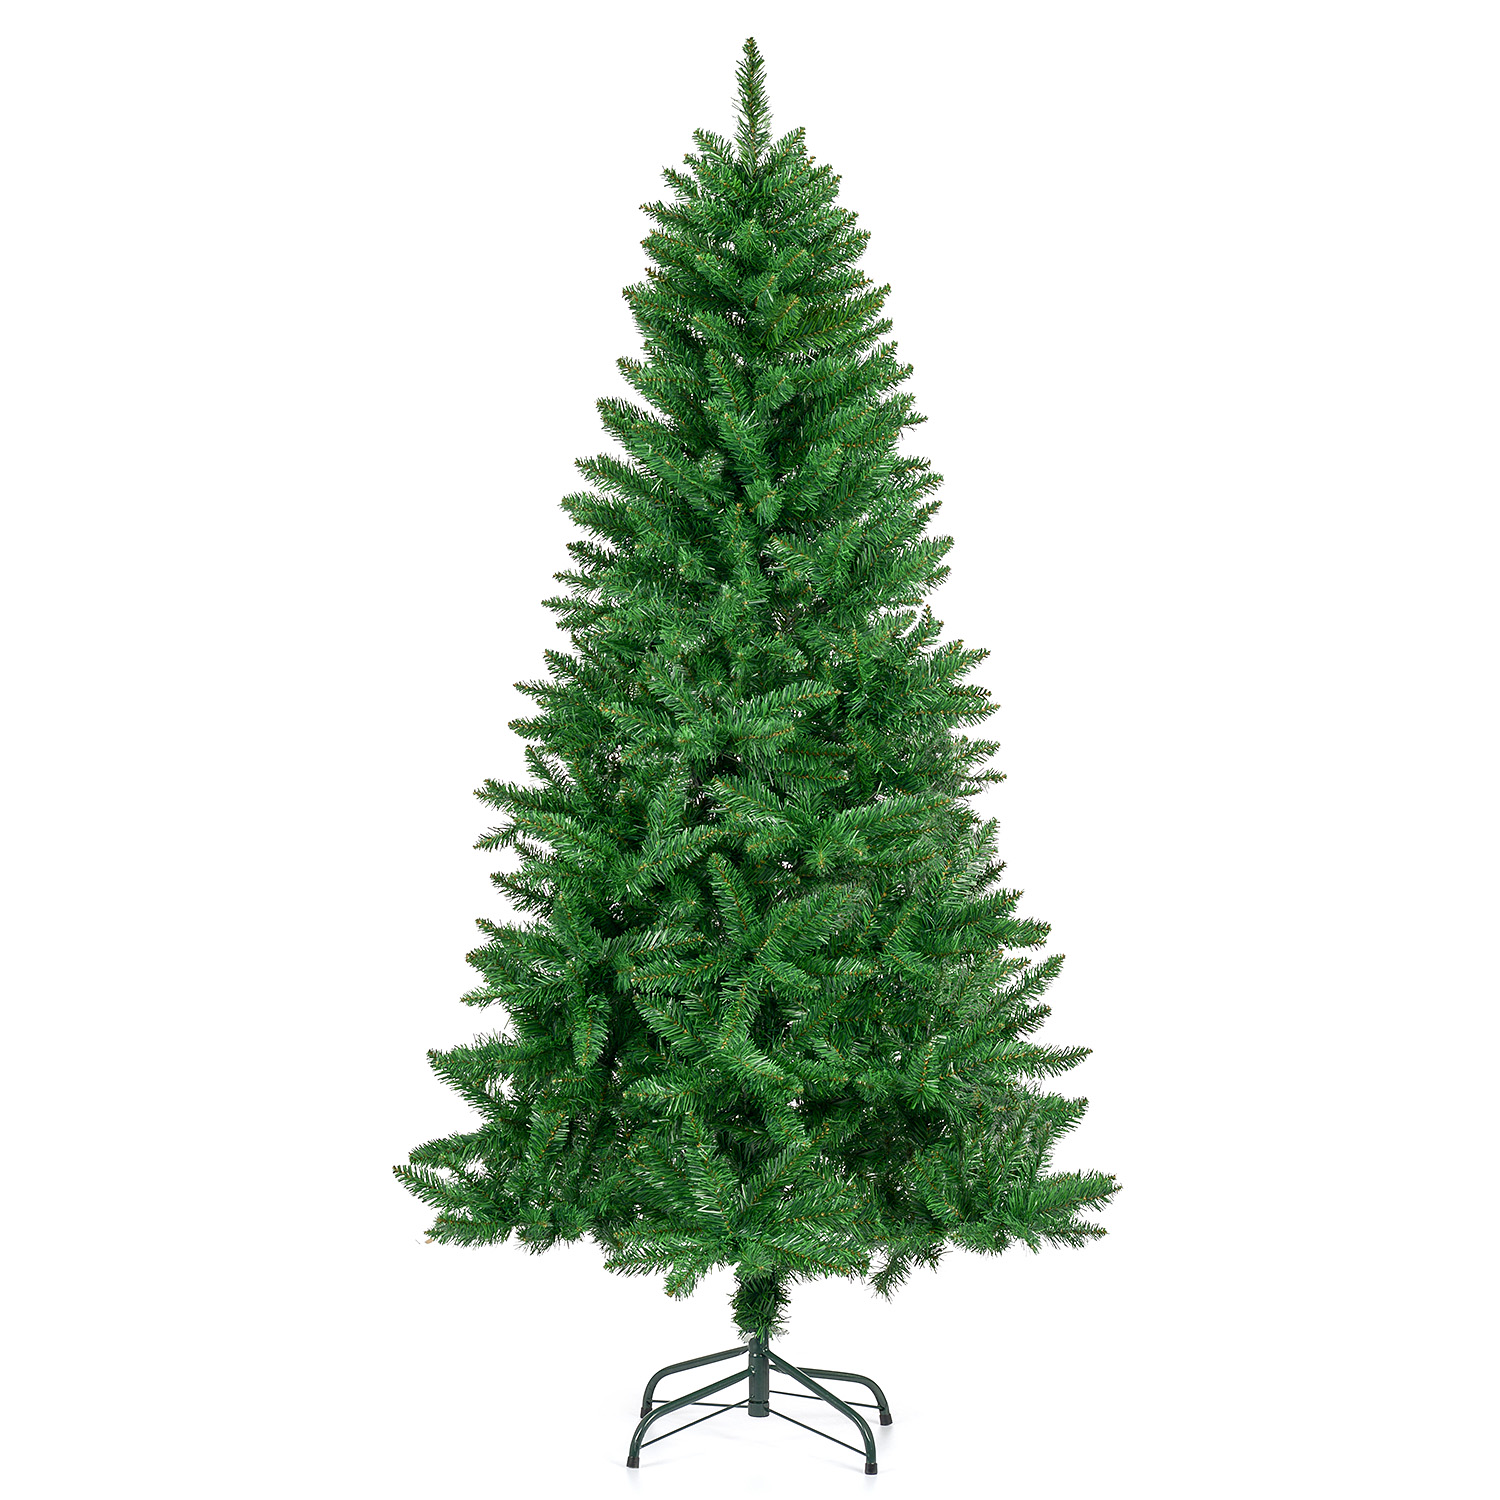 Image of Artificial Spruce Christmas Tree 6ft